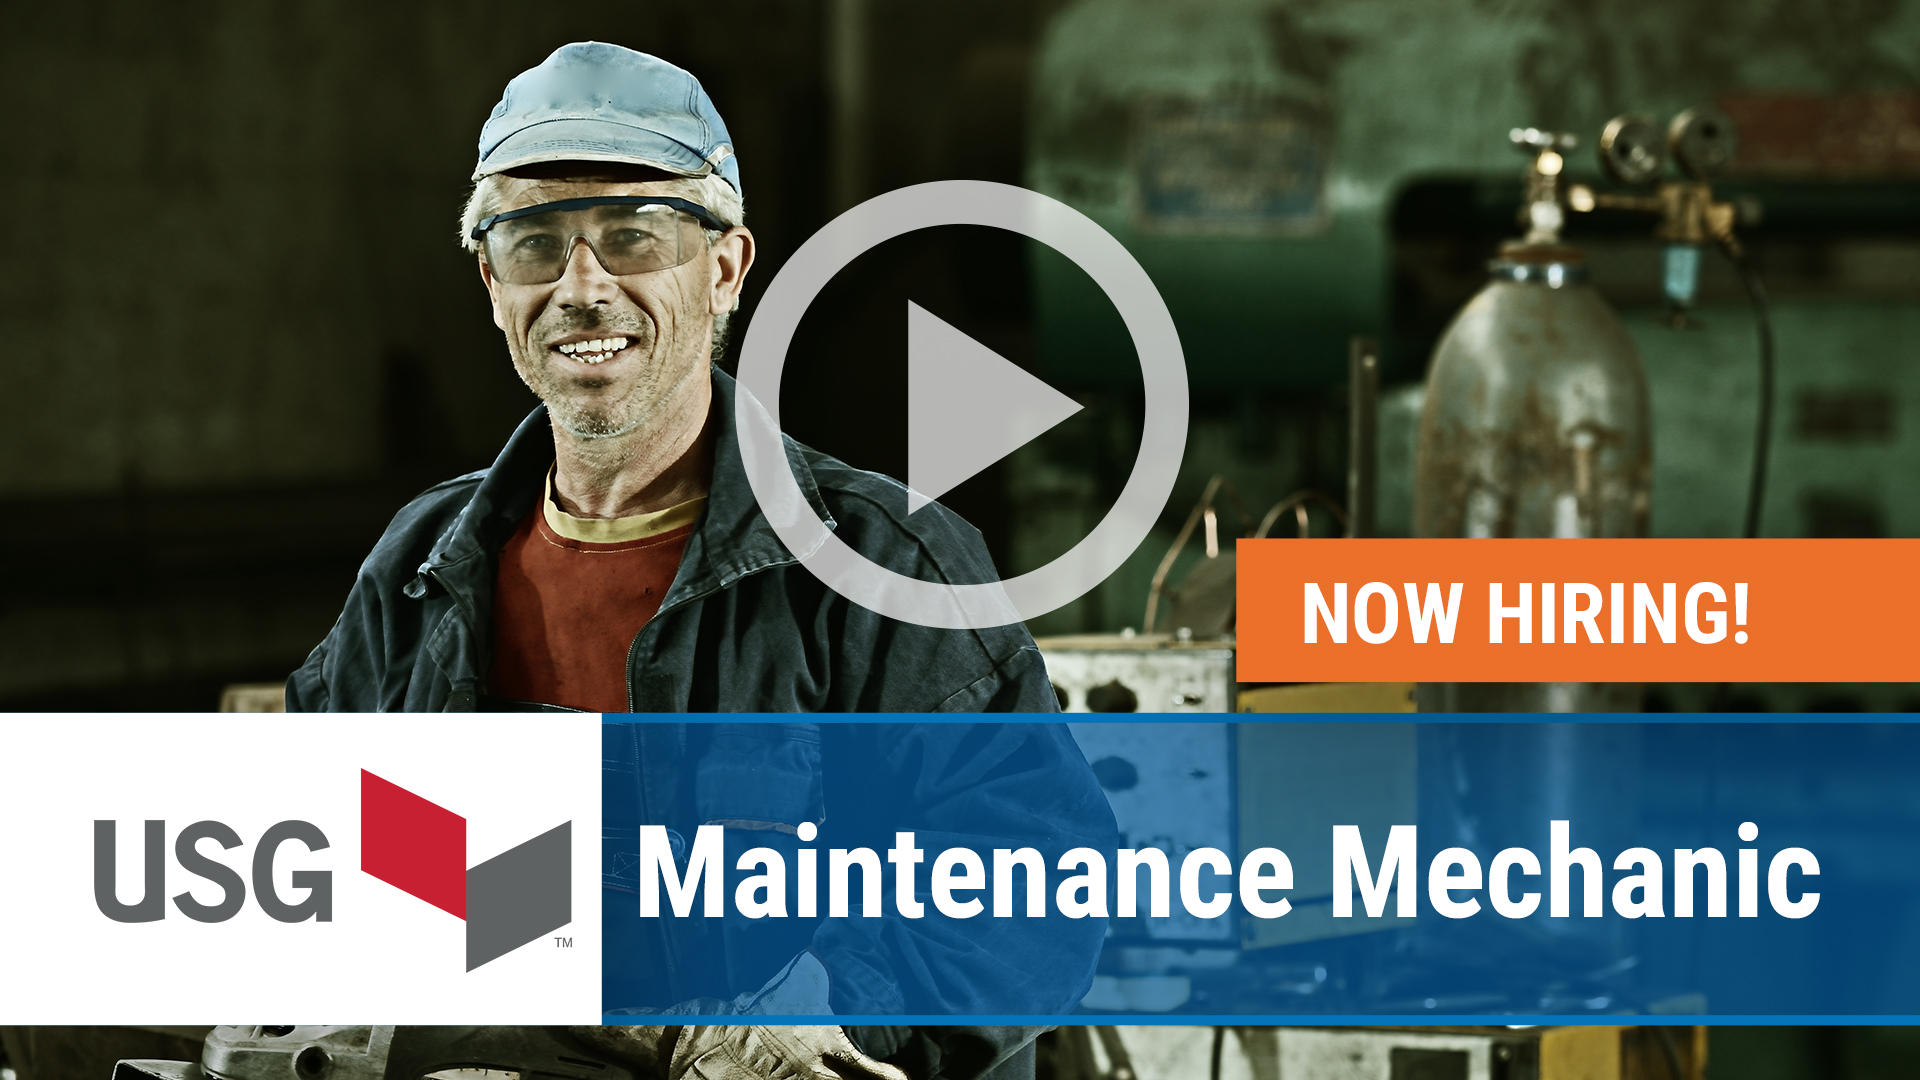 Watch our careers video for available job opening Maintenance Mechanic in Baltimore, MD